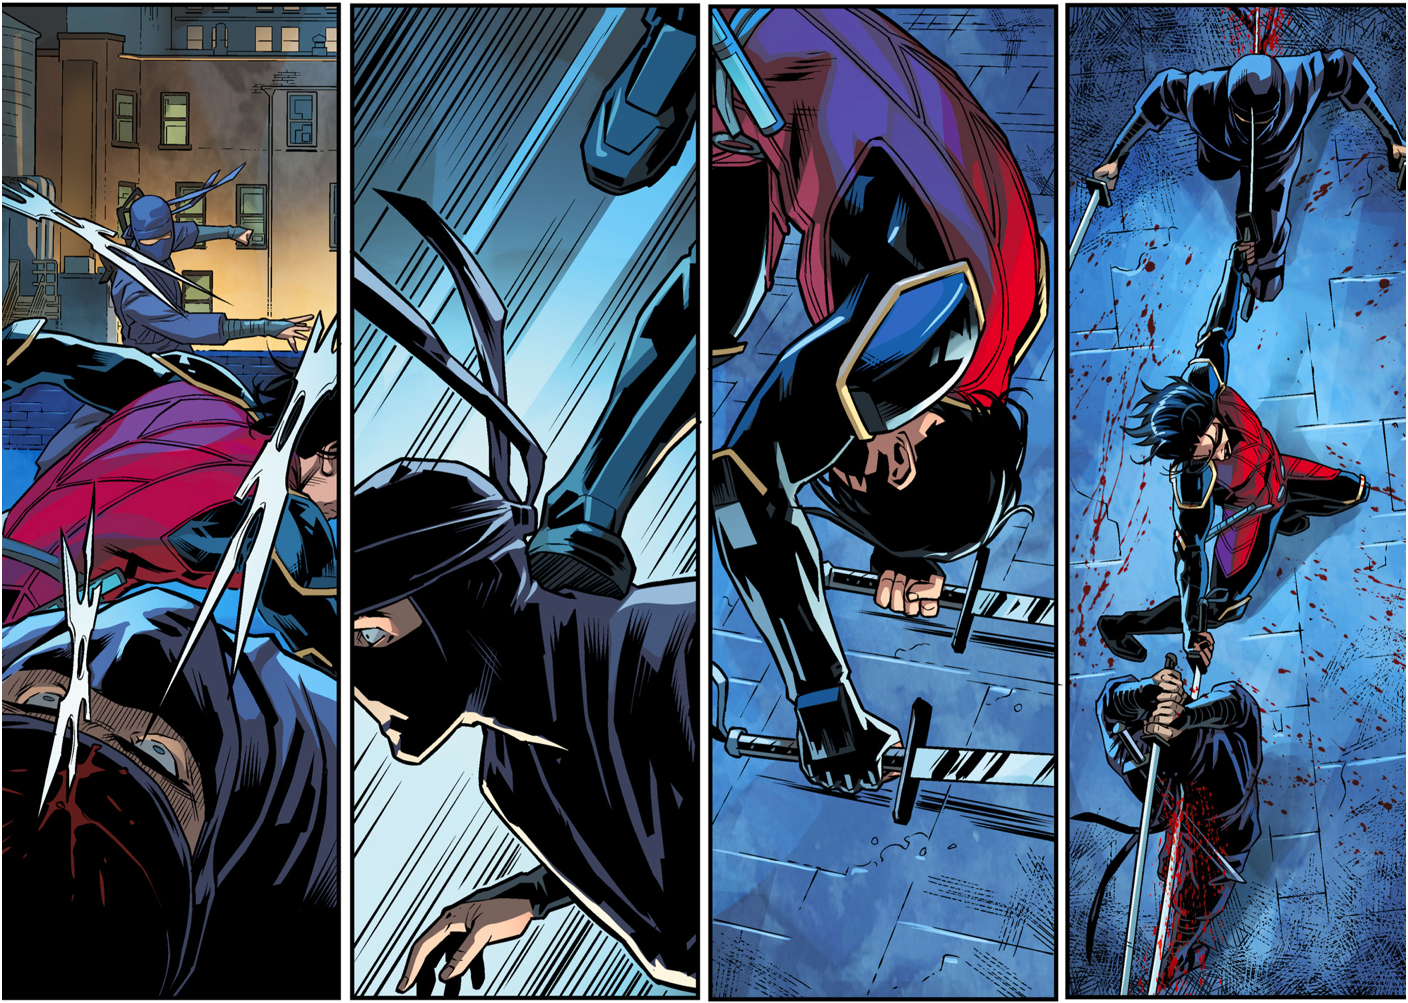 Nightwing (Damian Wayne) VS League Of Shadows Ninjas ...